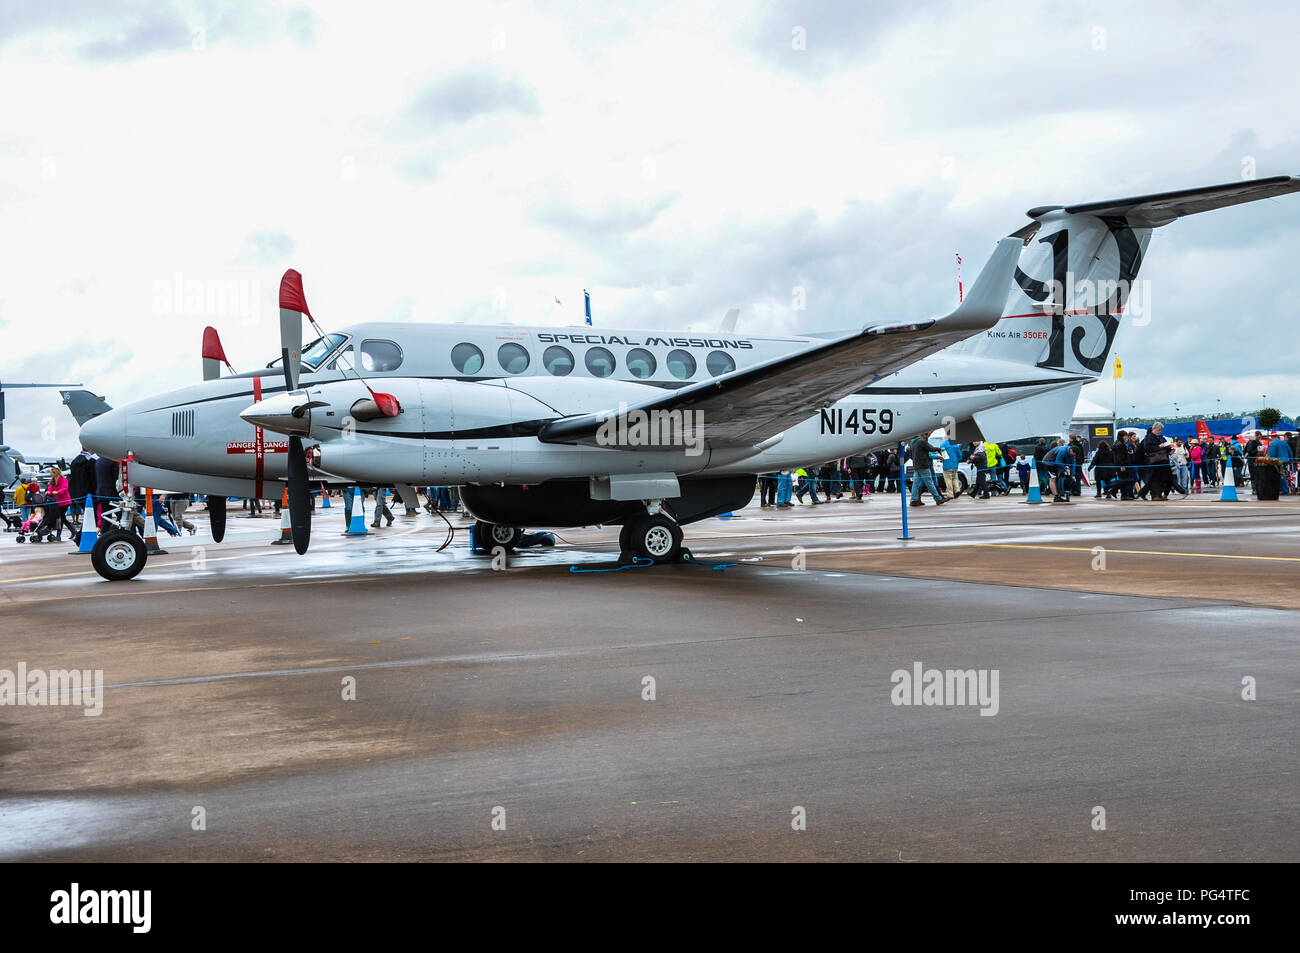 Beechcraft King Air 350ER Special Missions at the Royal International Air Tattoo RIAT RAF Fairford, Cotswolds, UK. Military version - Stock Image